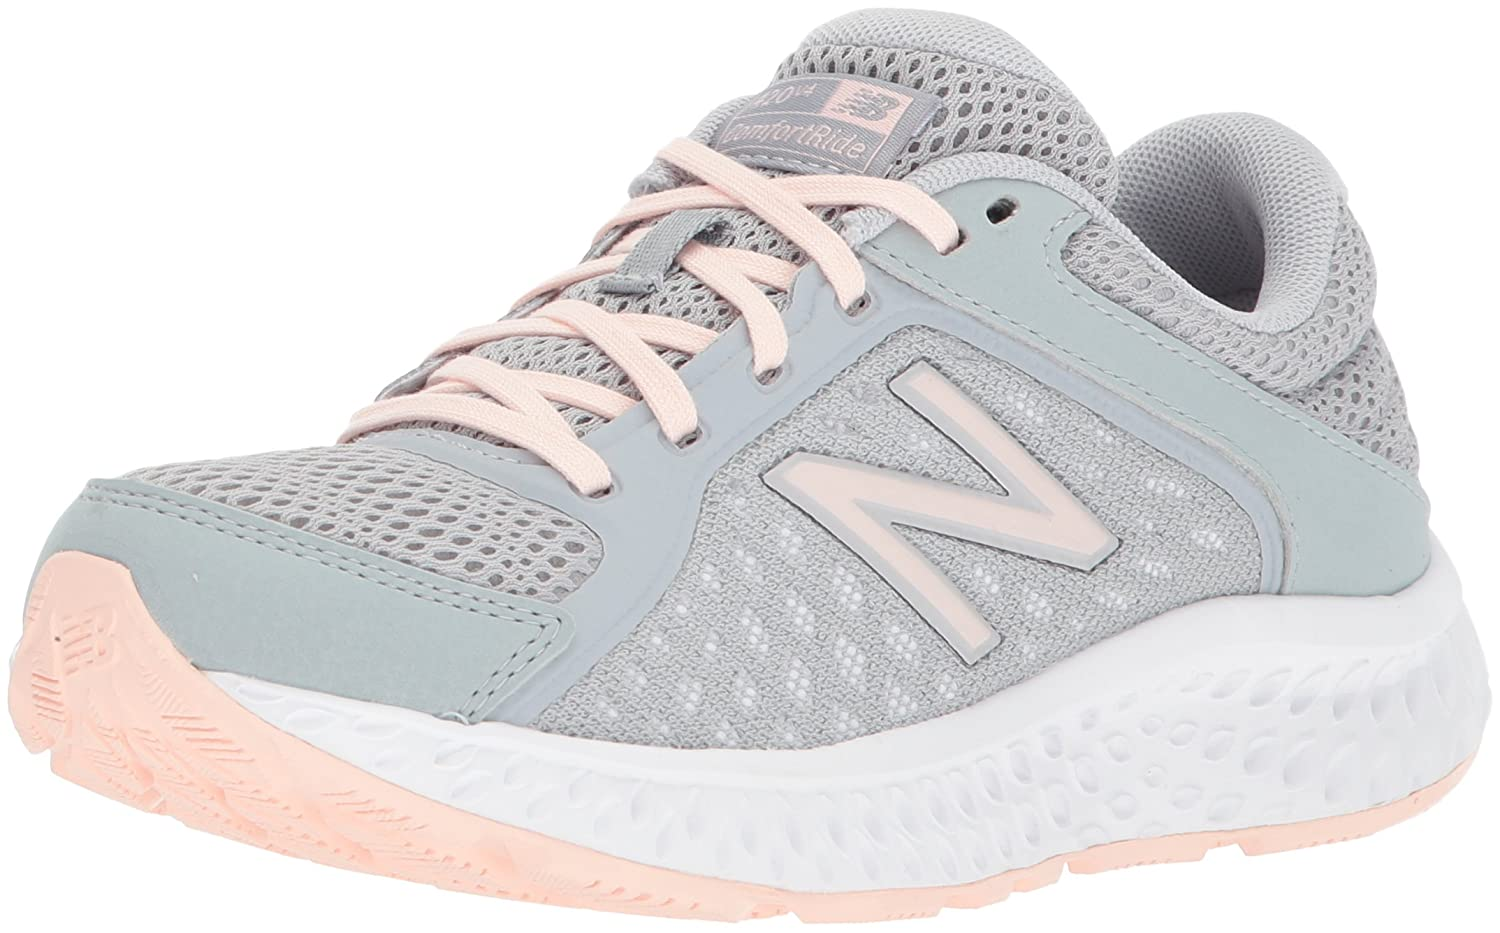 New Balance Women's 420v4 Cushioning Running Shoe B06XS68PMC 9 D US|Silver Mink